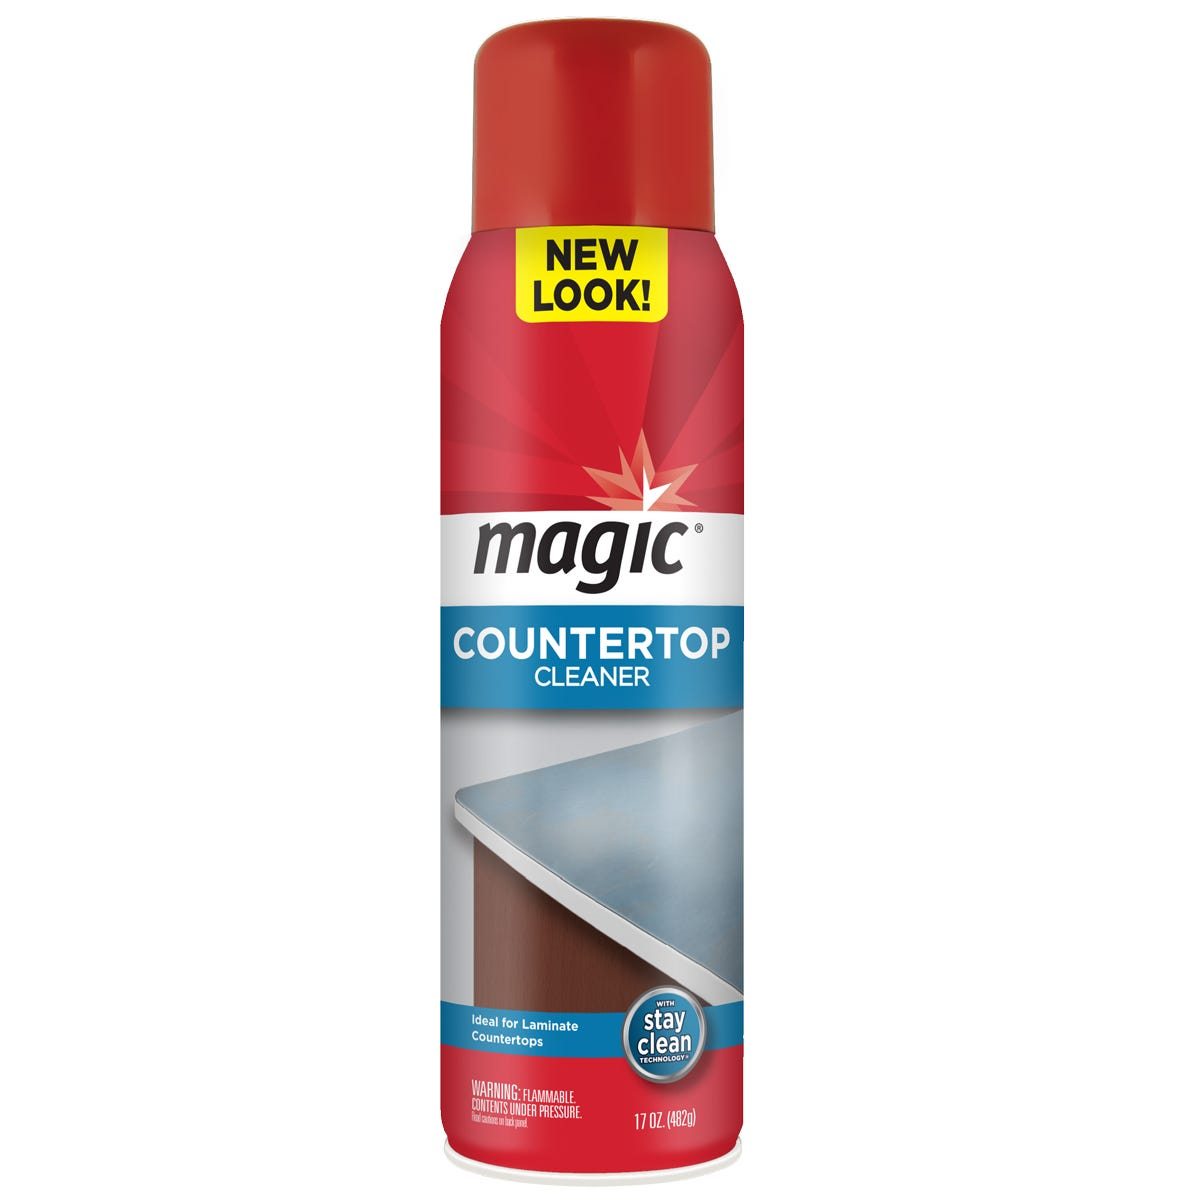 https://googone.com/media/catalog/product/m/a/magic-countertop-cleaner-aerosol_front.jpg